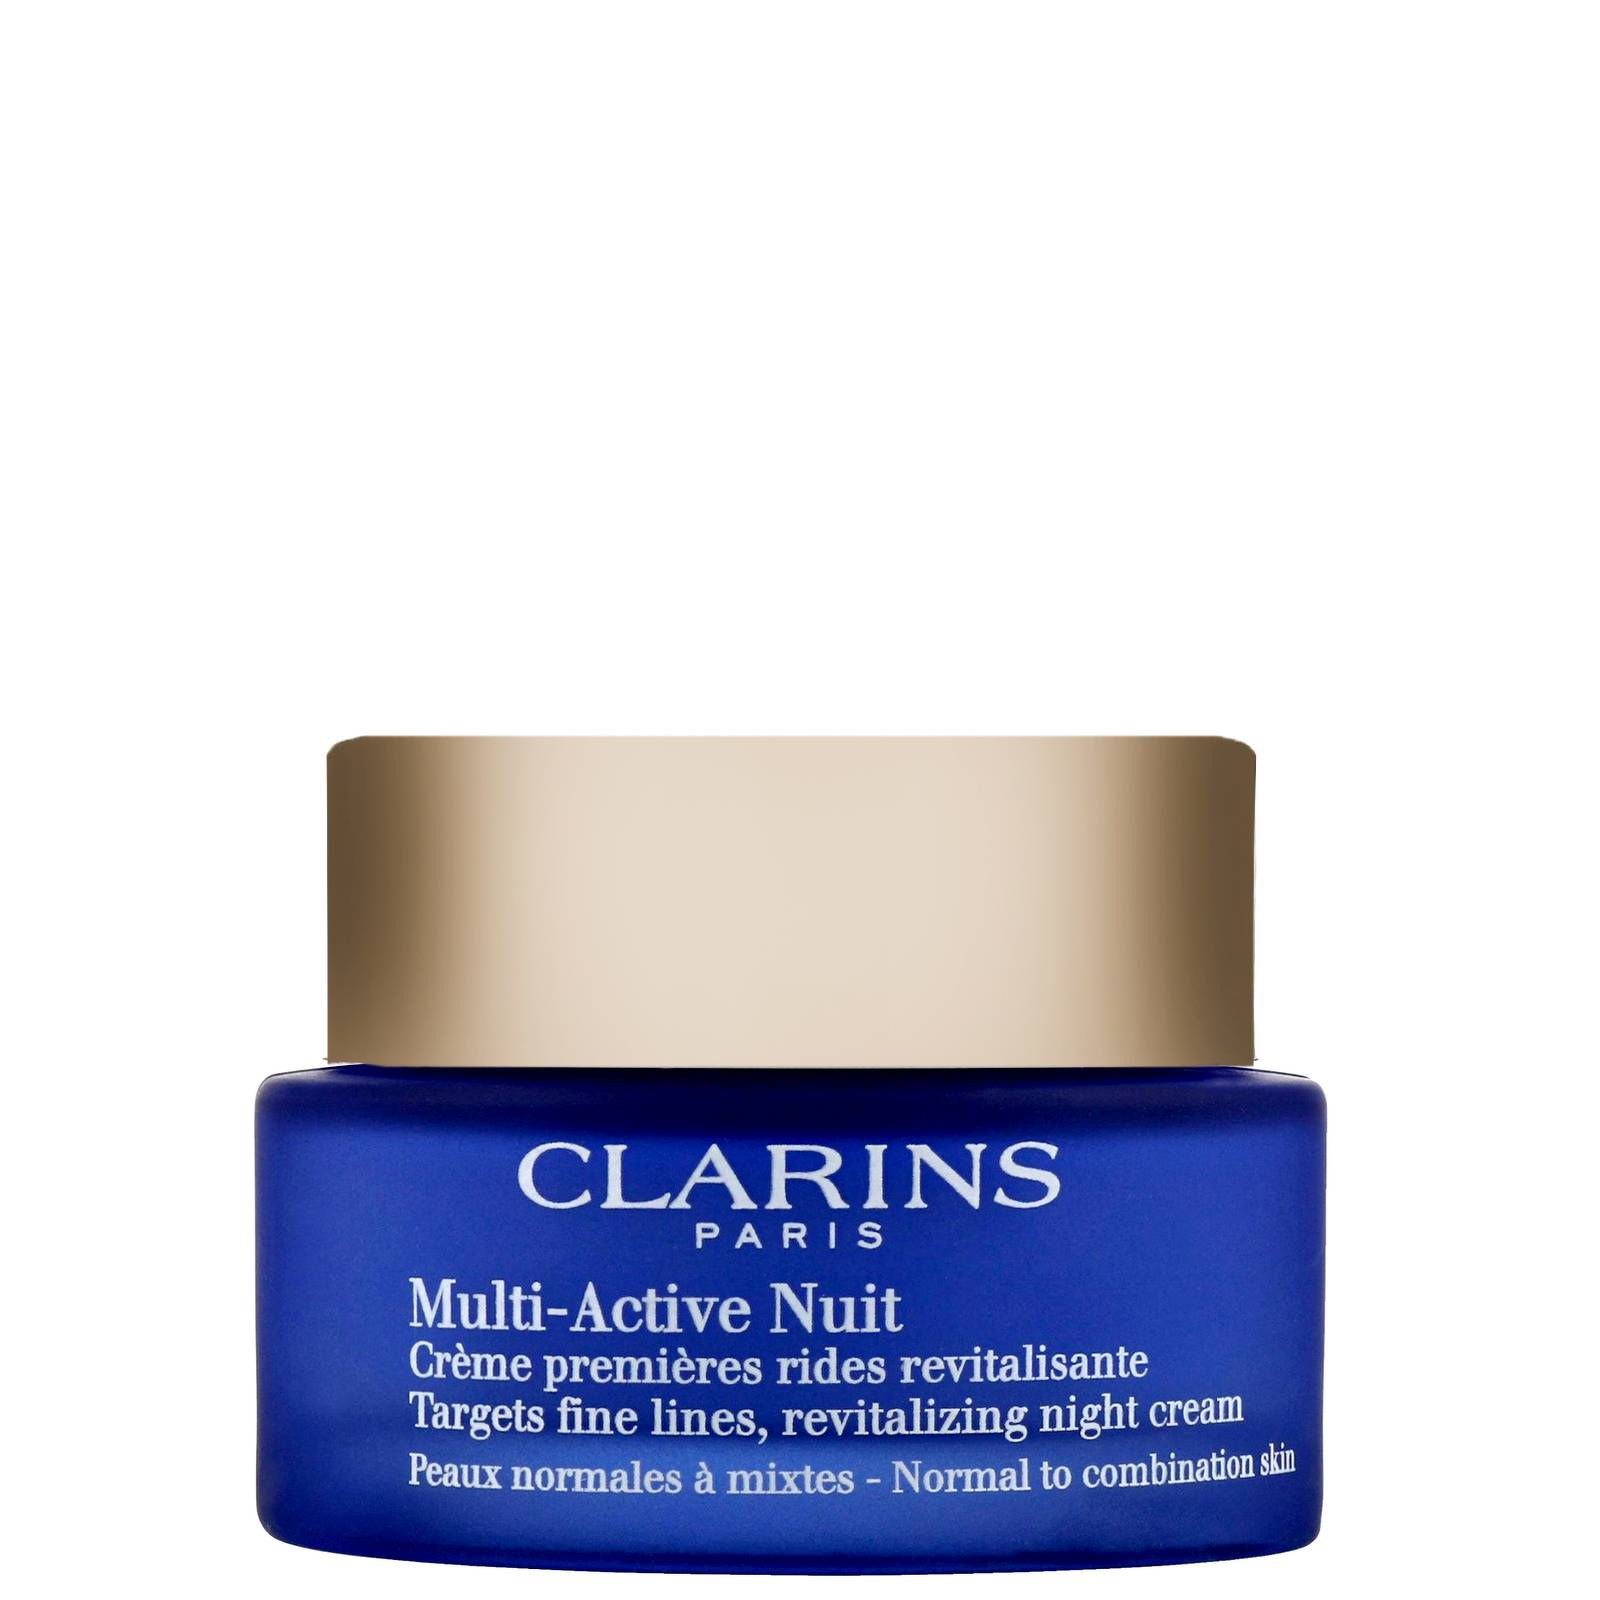 Clarins - Multi-Active Nuit Cream Normal/Combination Skin 50ml / 1.6 oz. for Women